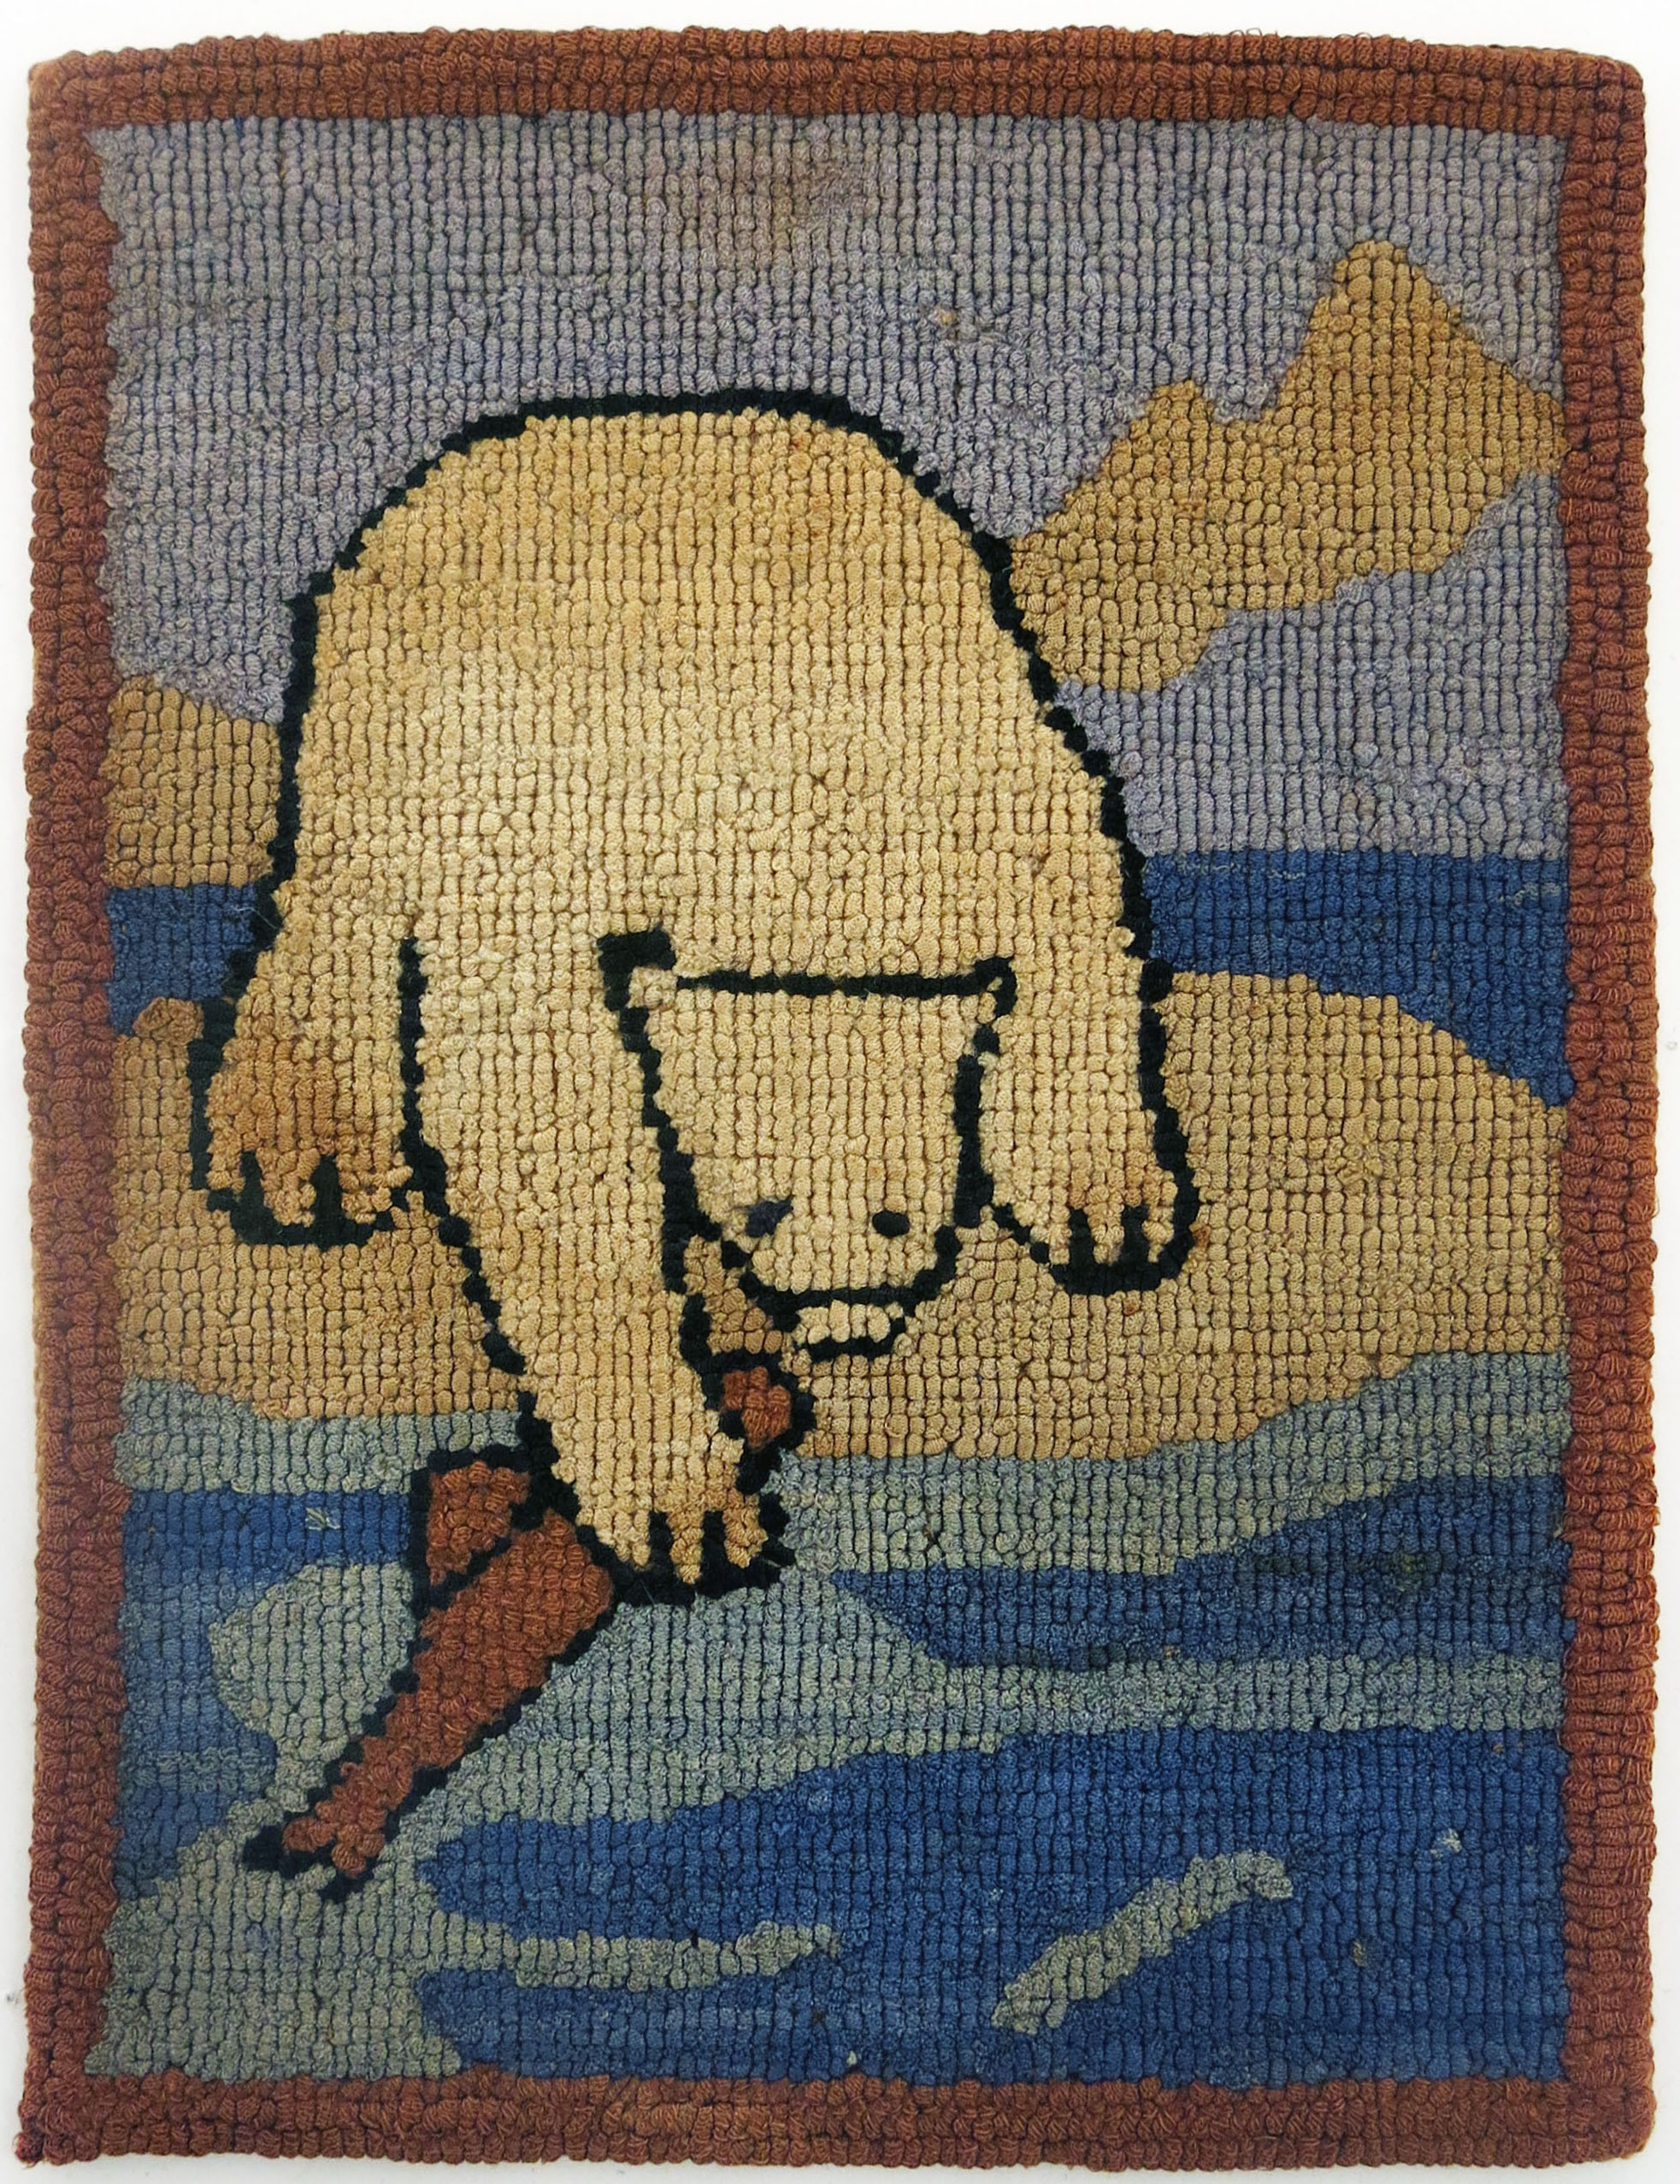 Anonymous, The Grenfell Mission, Polar Bear Grabbing Fish, c. 1936, cotton, silk, and rayon; dyed, 9 1/2h x 7w in.